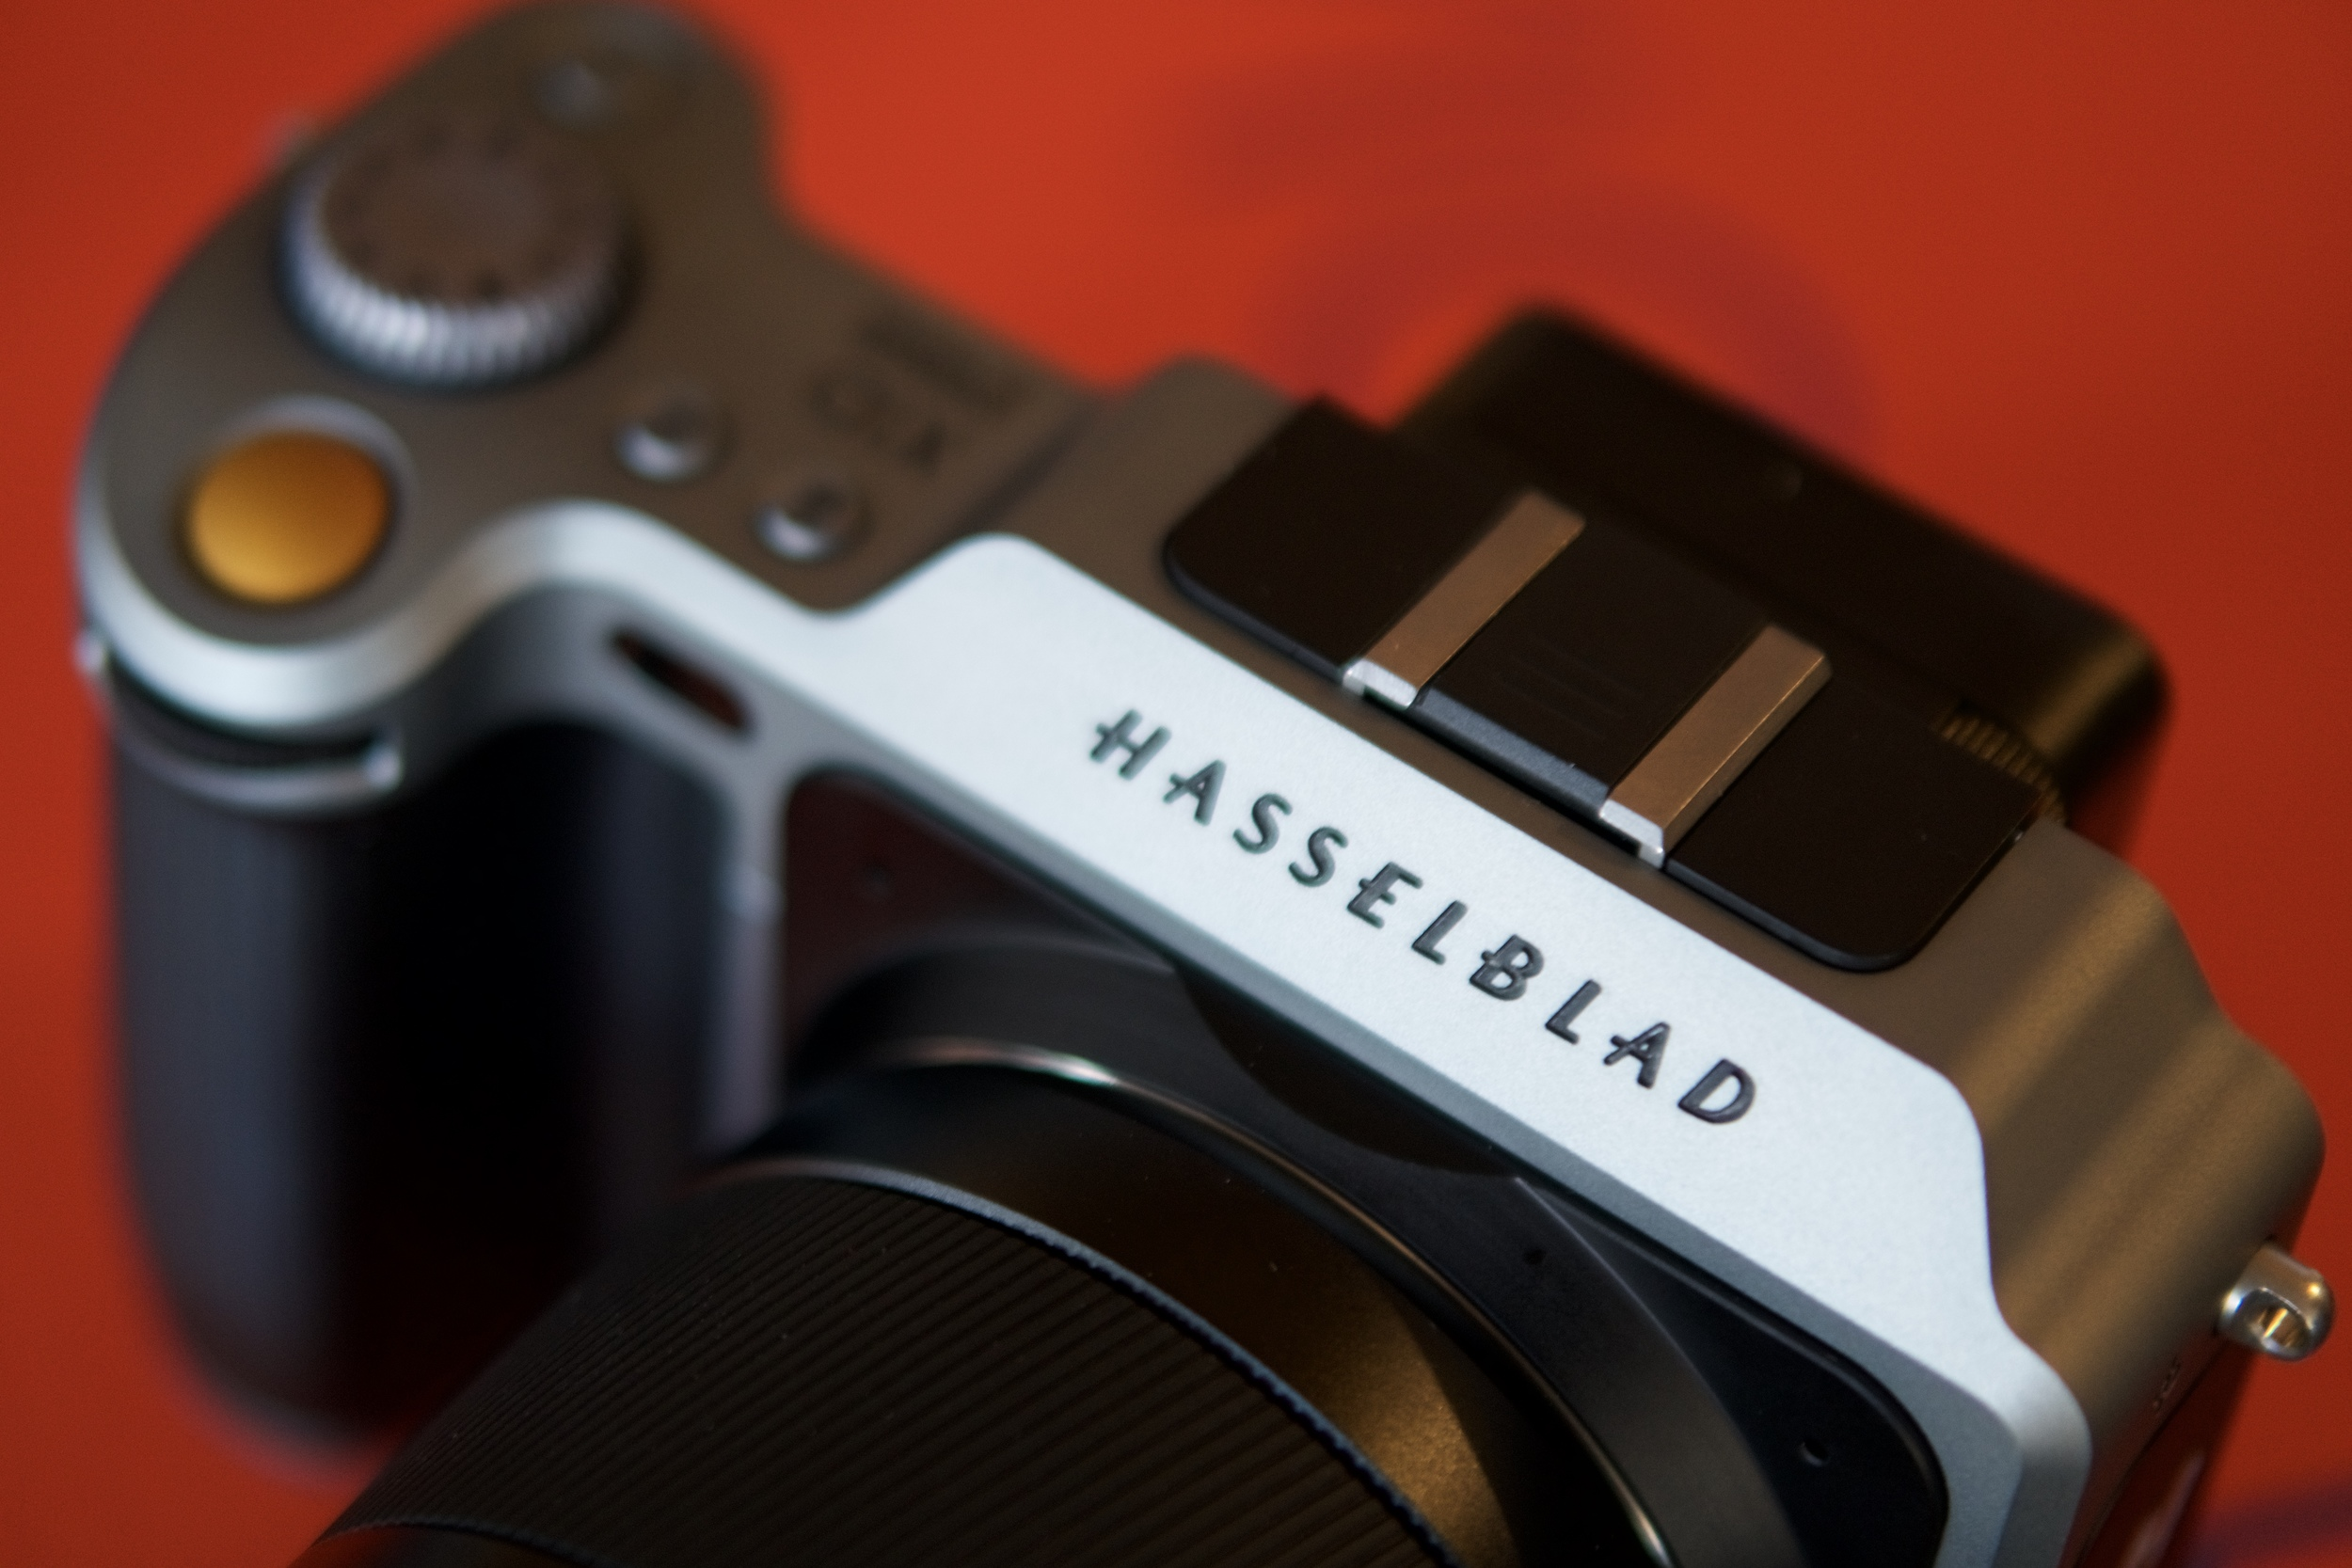 Hasselblad  X1D  is one third the price of its full-boat bigger brother    H6D-50c   , even though it has the same sensor and software user interface.